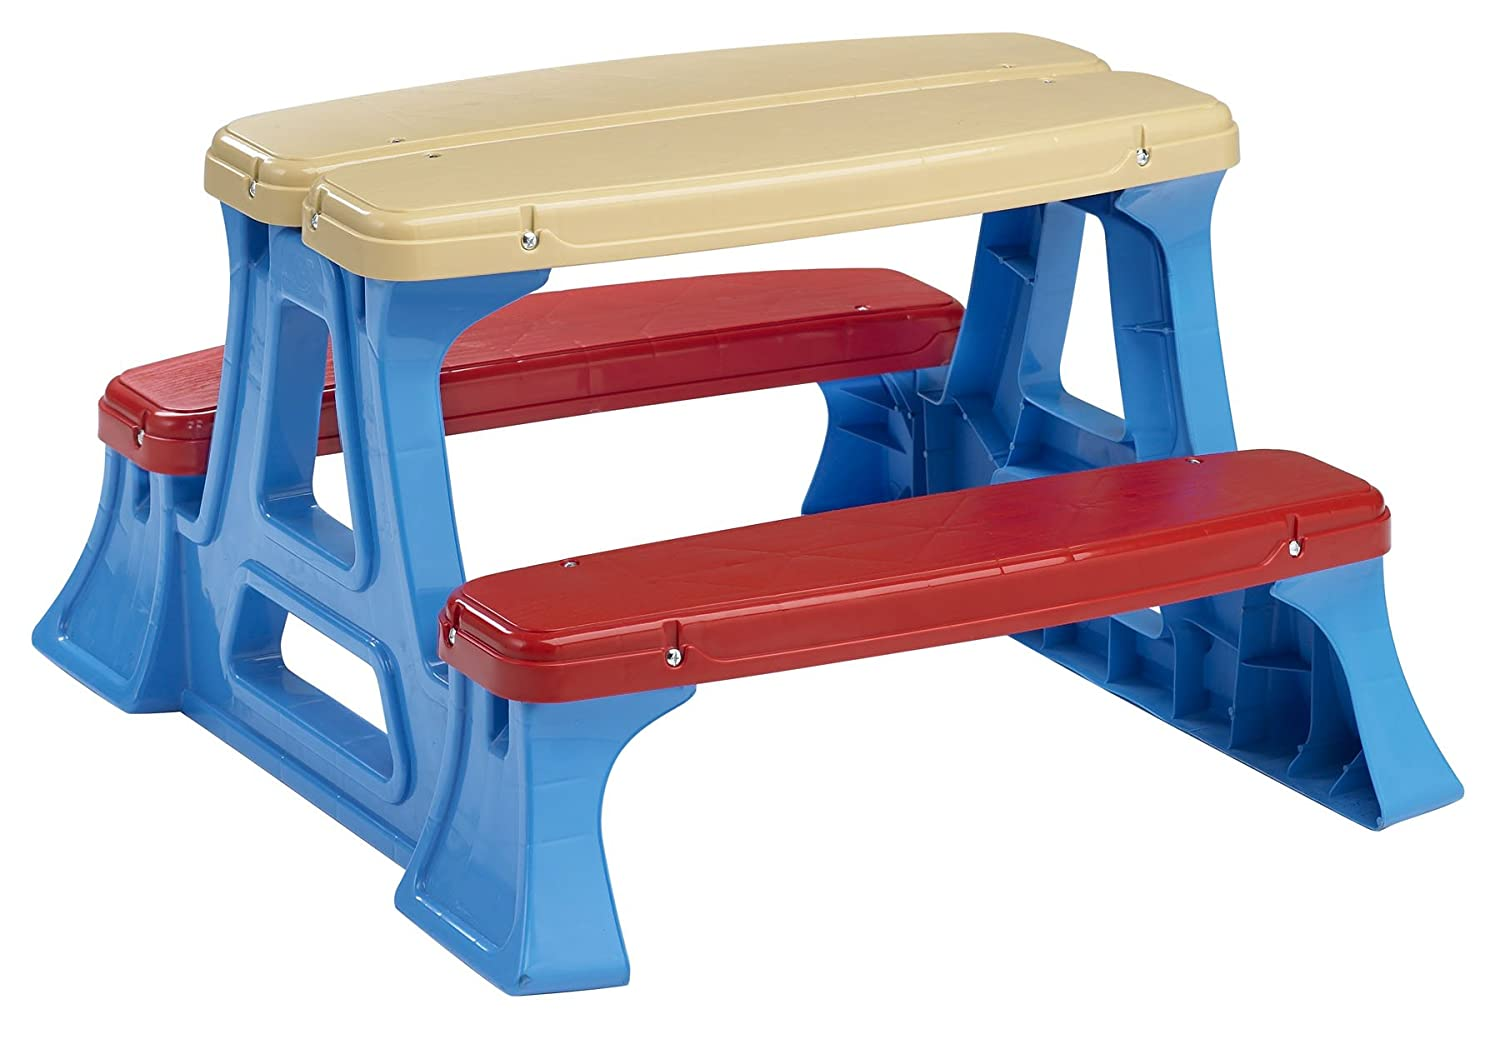 Picnic Tables For Kids Fel7 Com